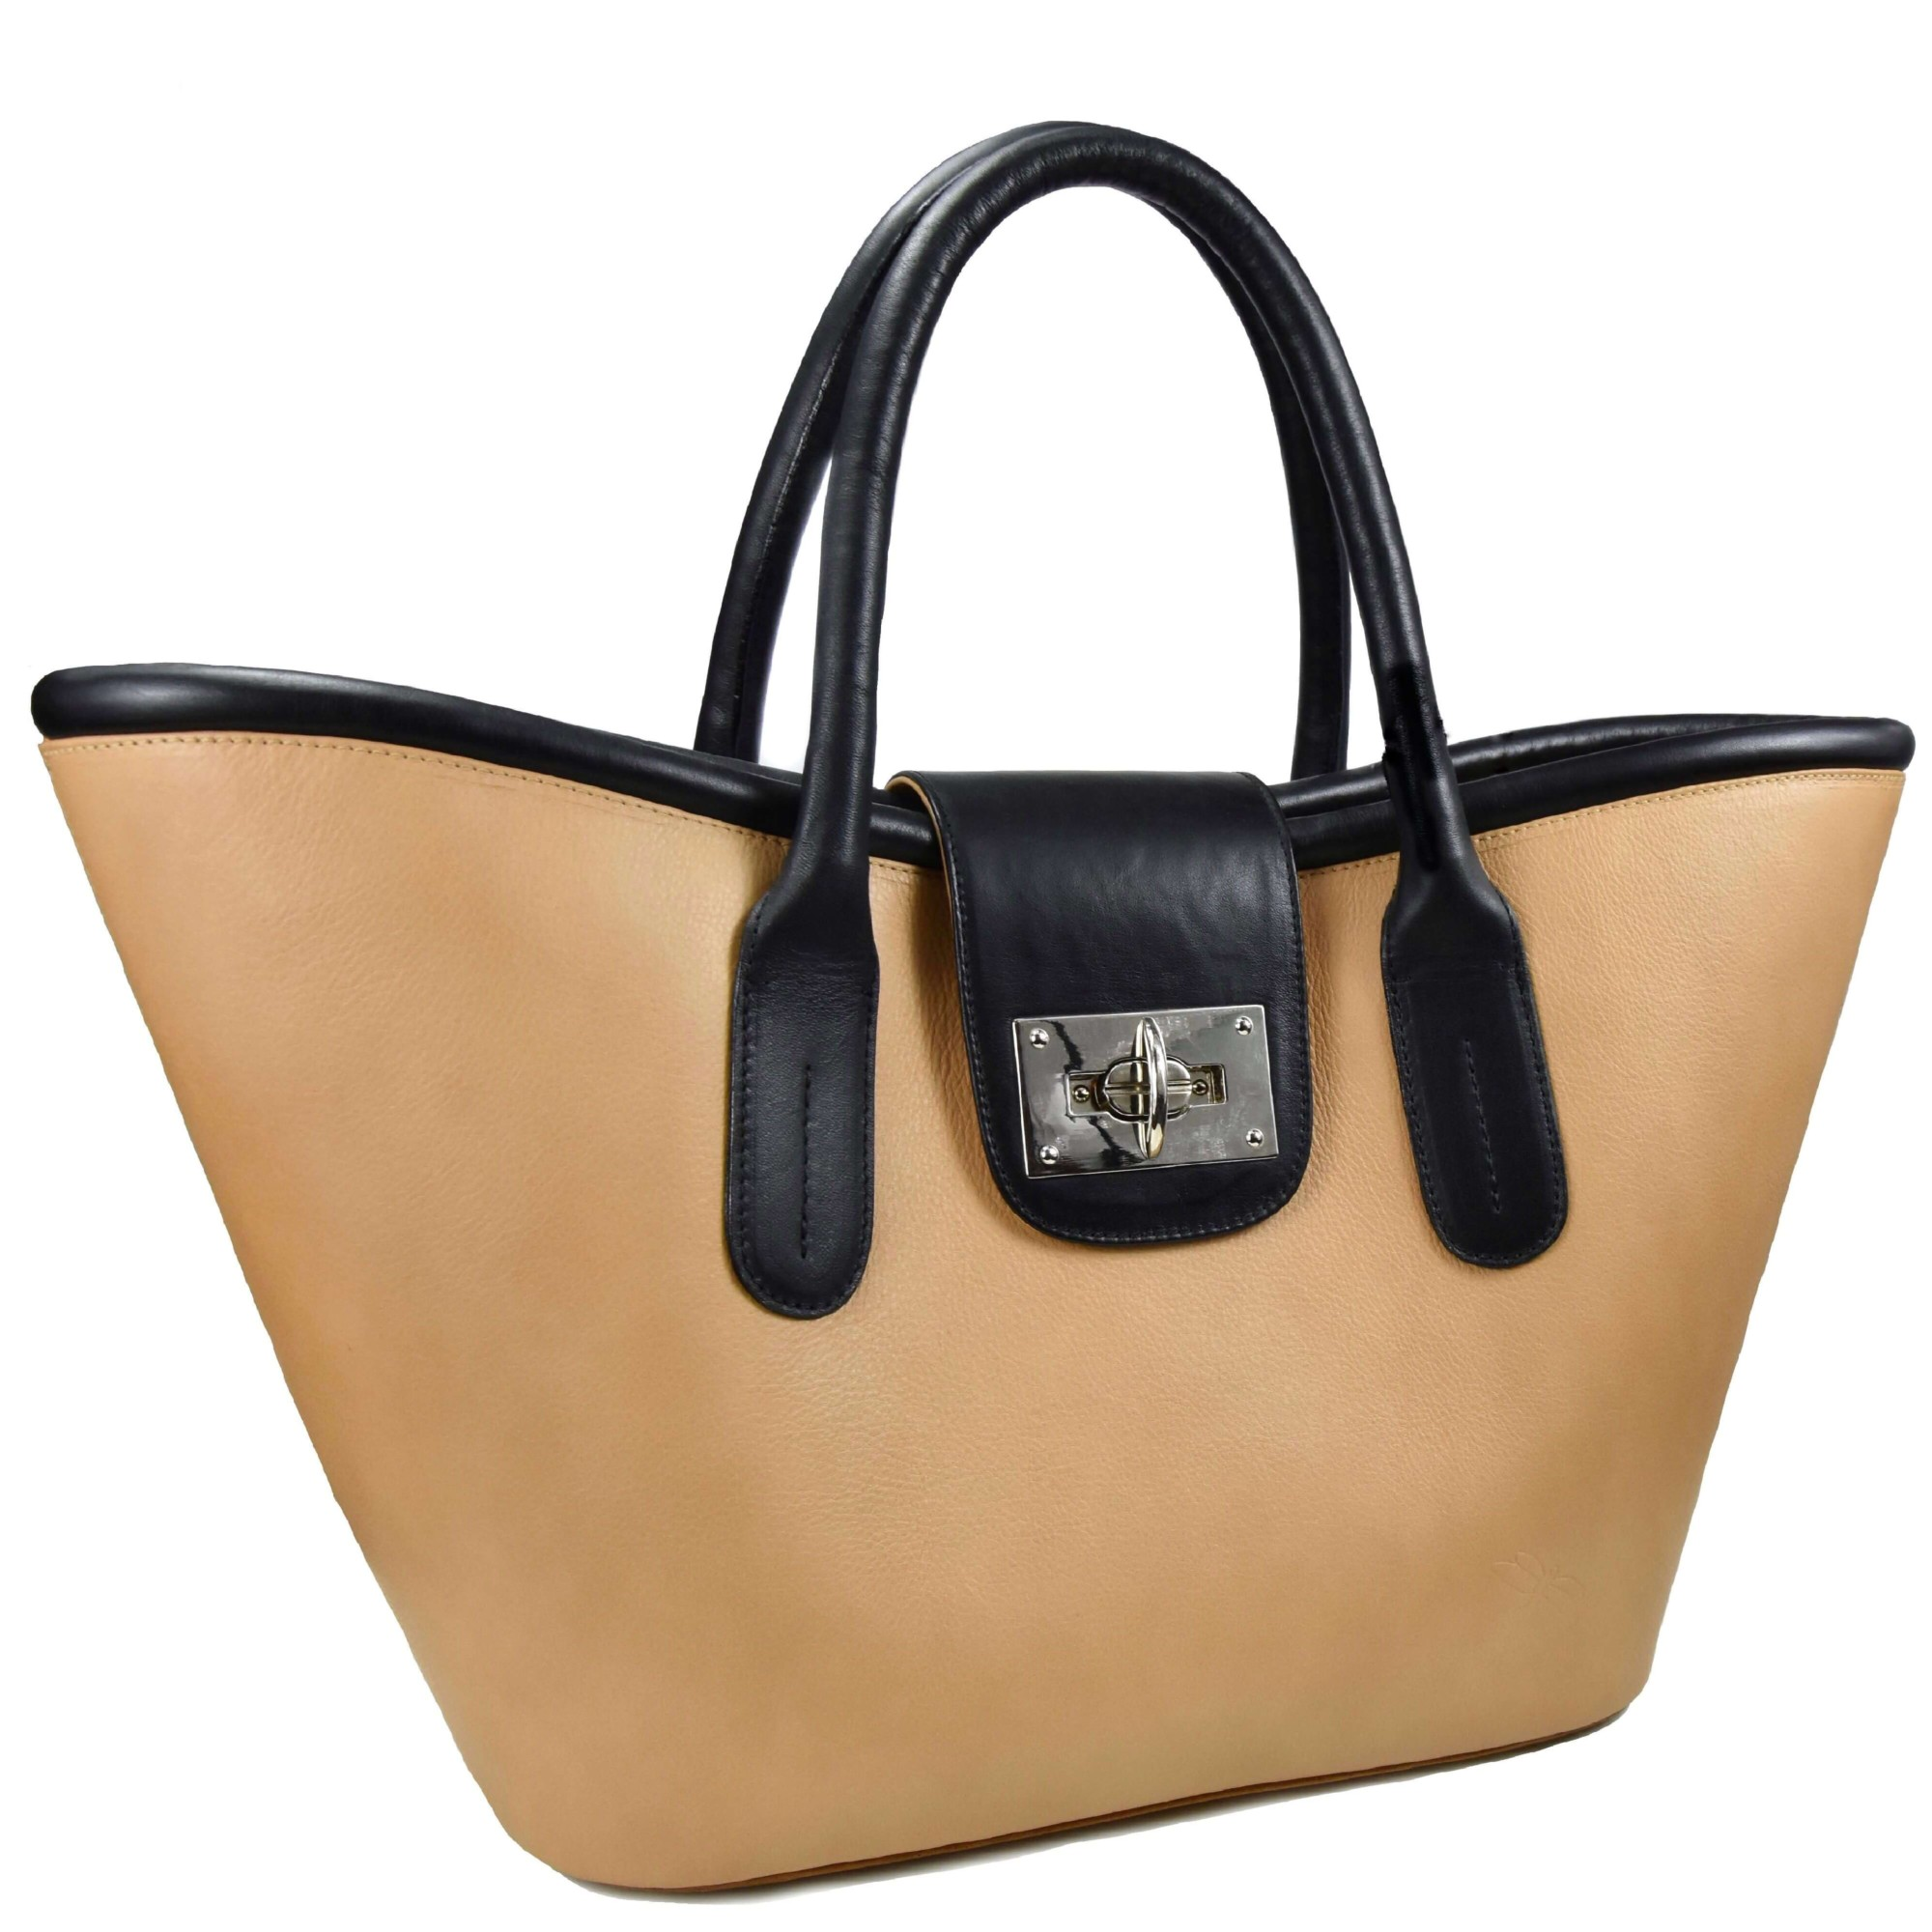 beige and black leather basket tara's handbags